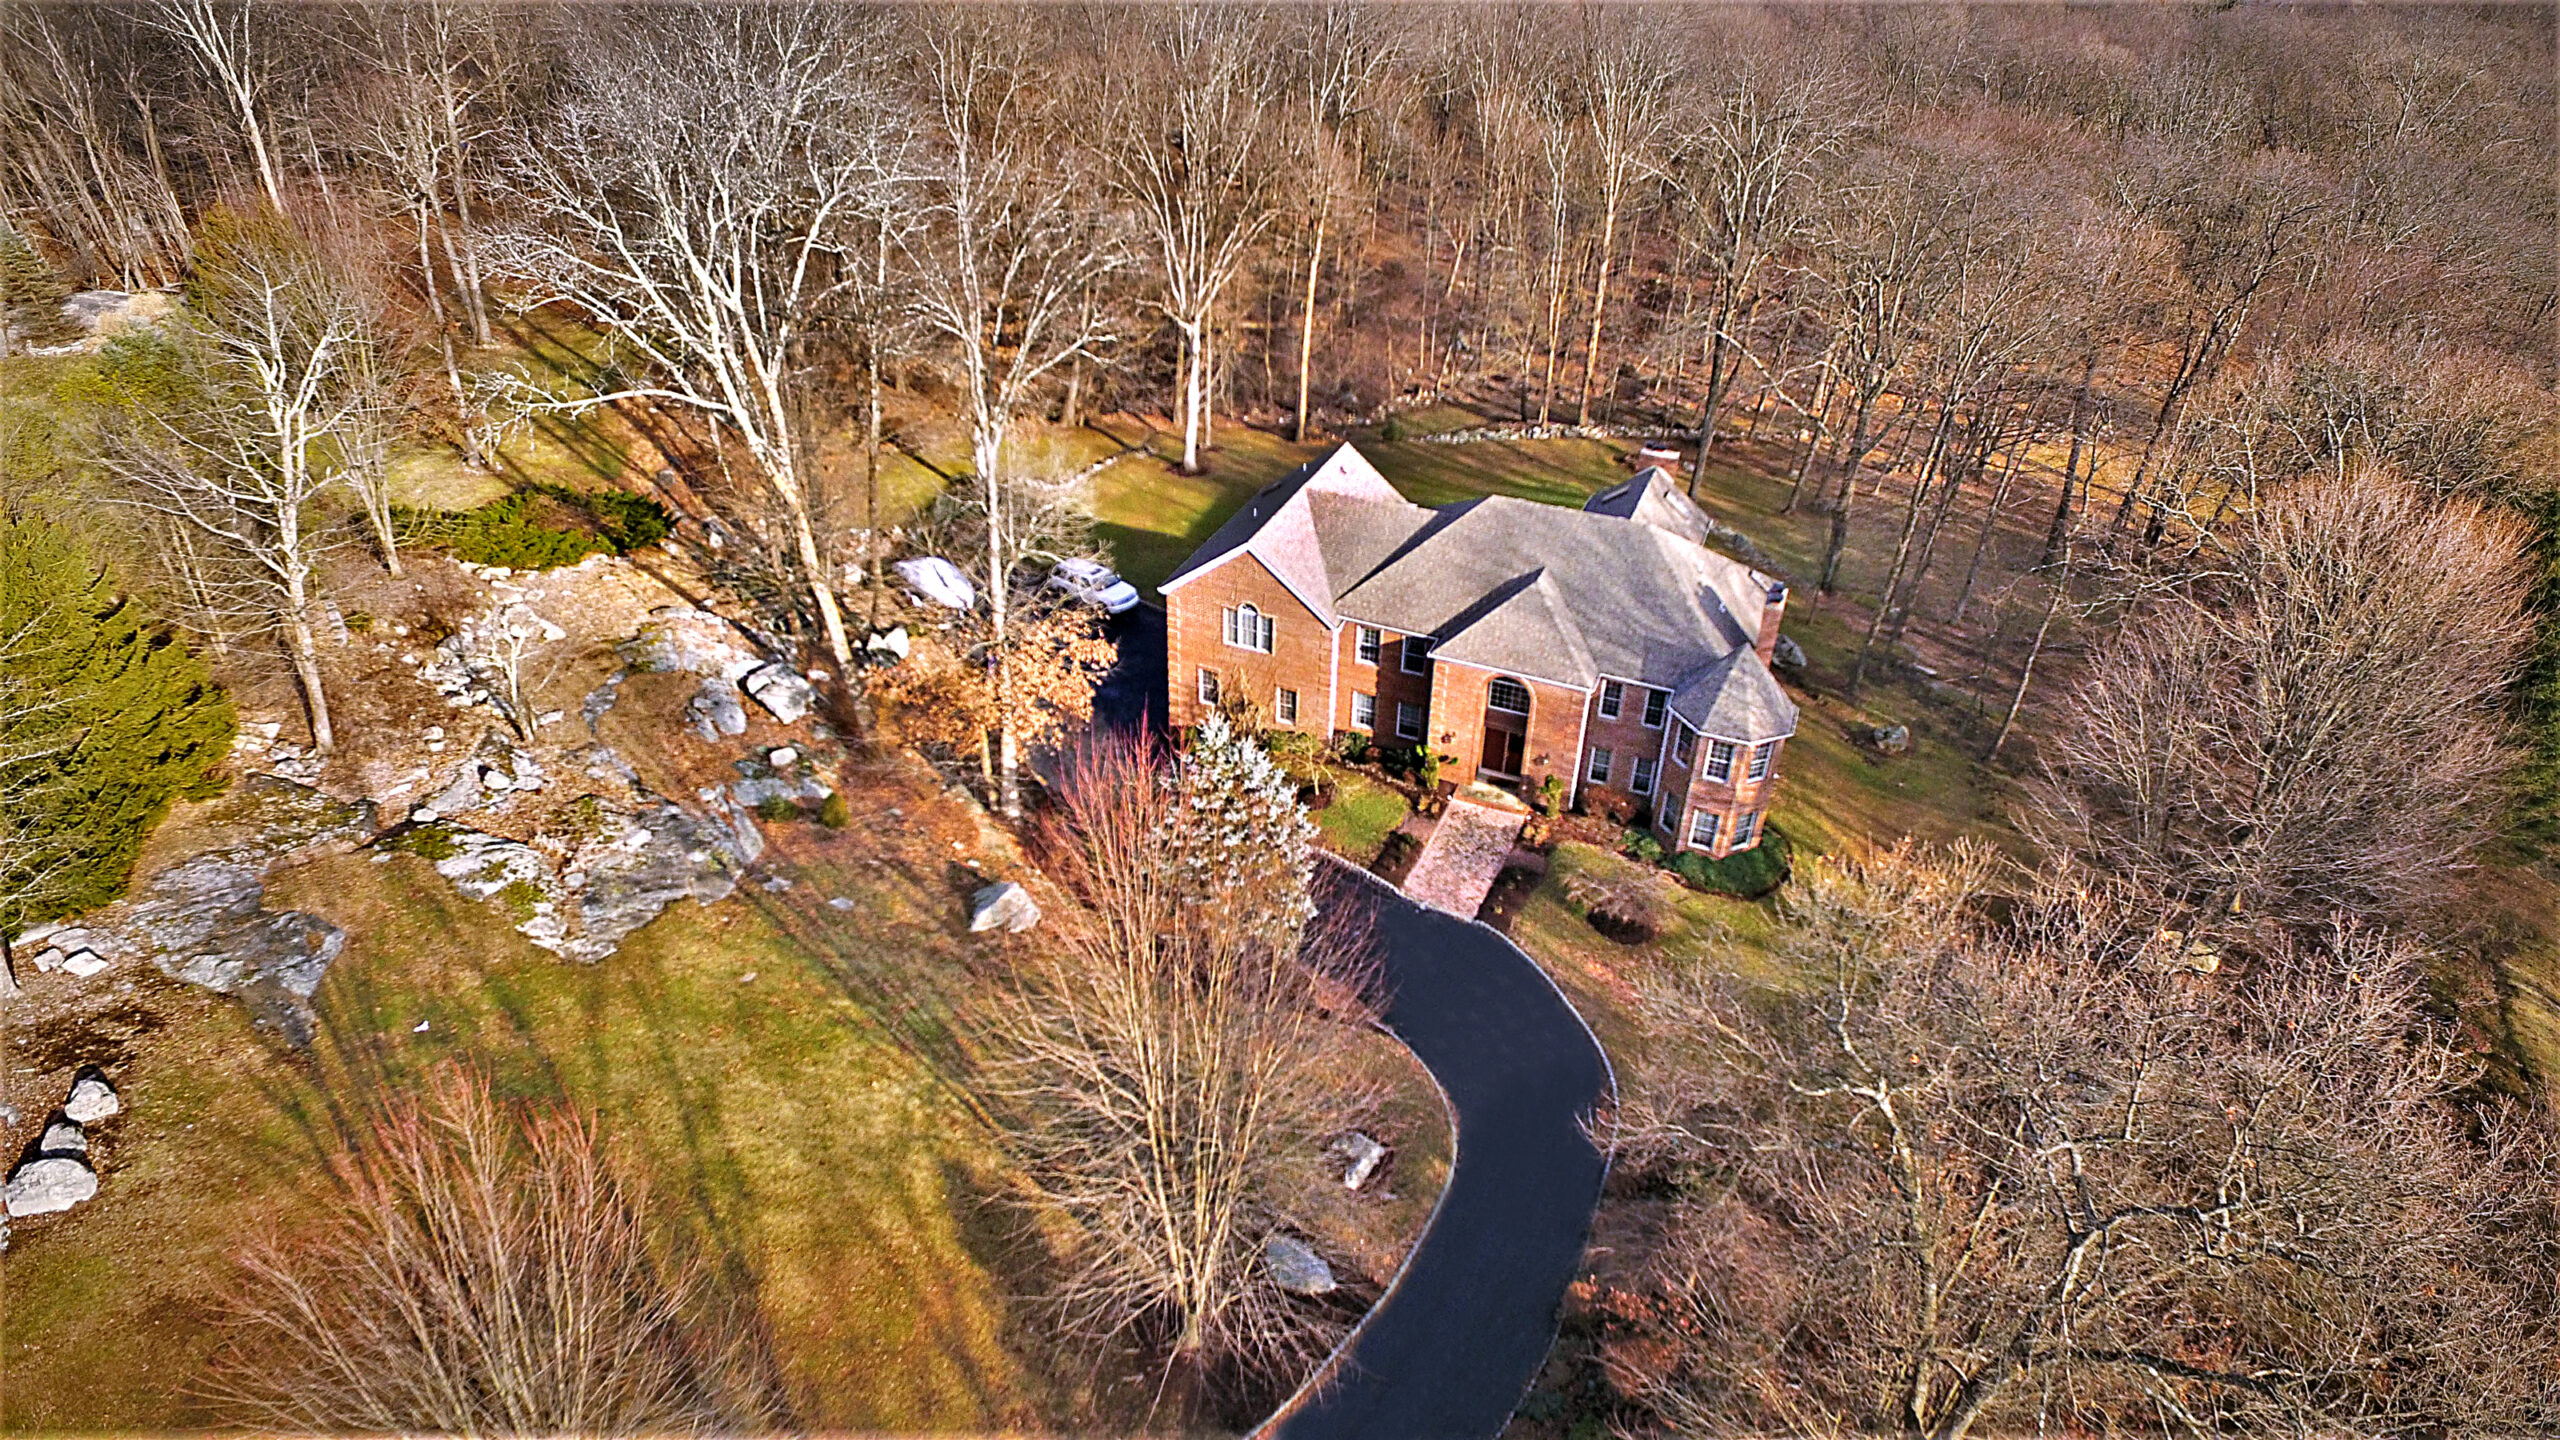 00-House-and-Lot-DJI0024